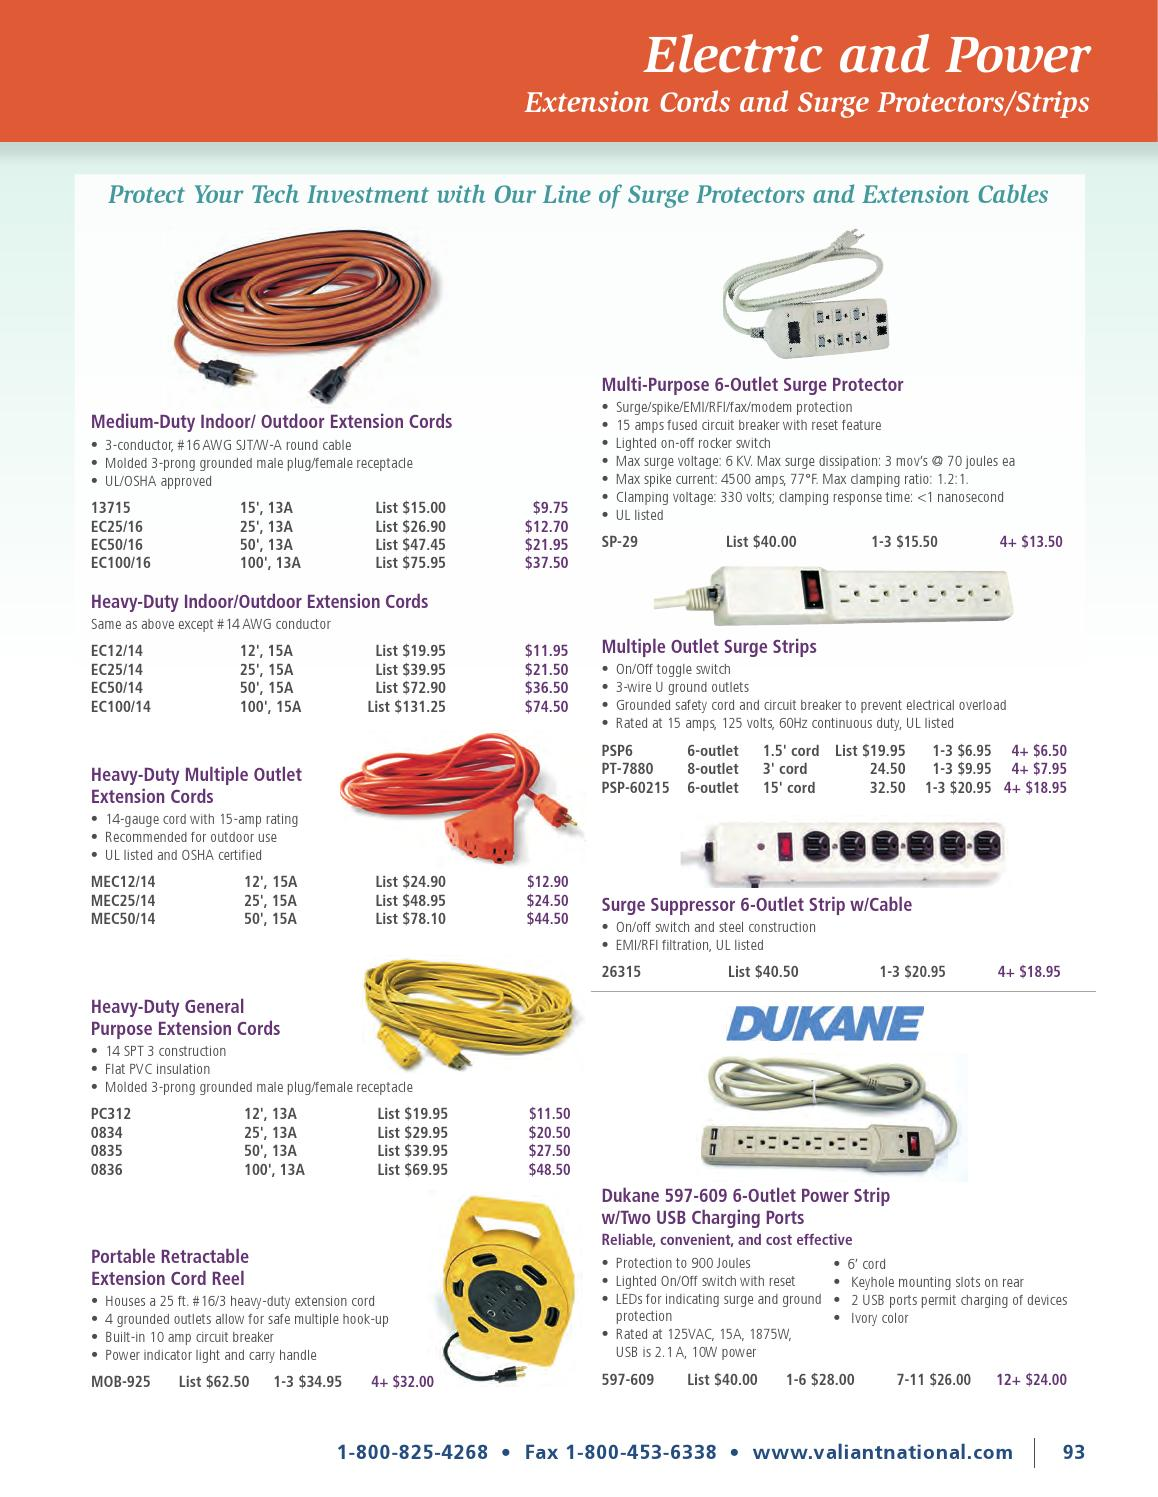 Valiant National Av Supply 2015 2016 By Vcom Issuu Extension Power 25 Ft Cord Reel 4 Outlet 12 Amp Construction Circuit